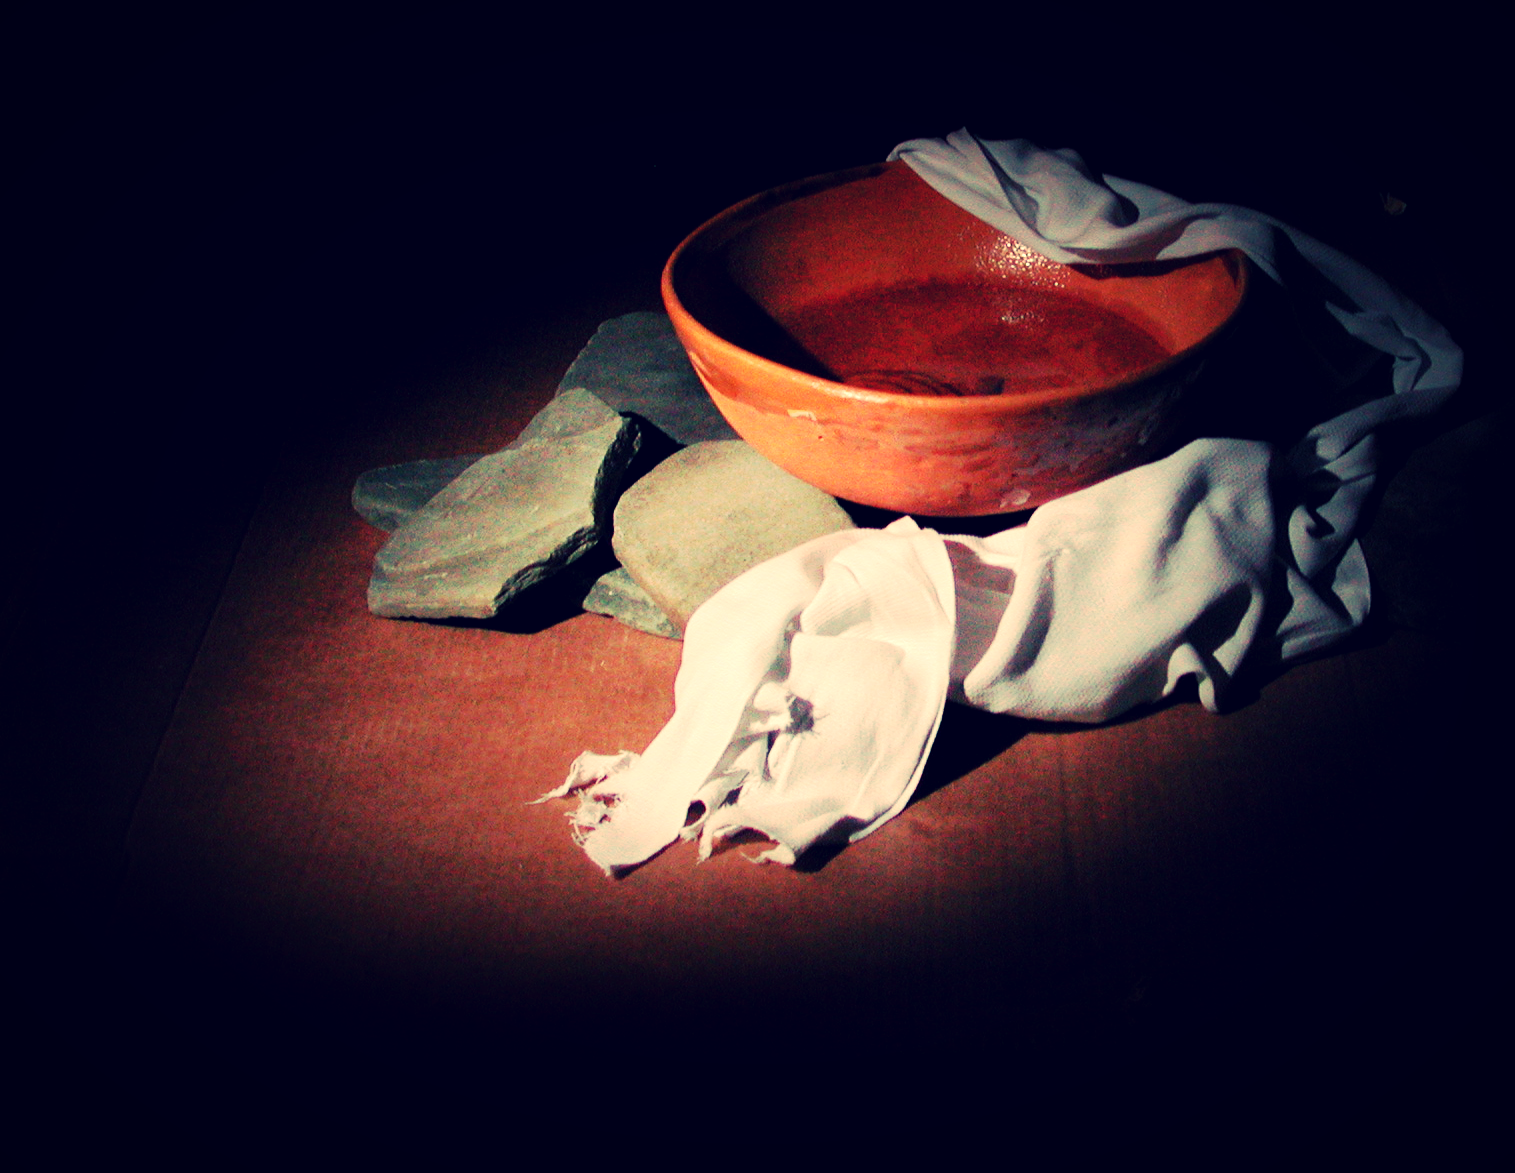 For even the Son of Man came not to be served but to serve, and to give his life as a ransom for many. (Mark 10:45)